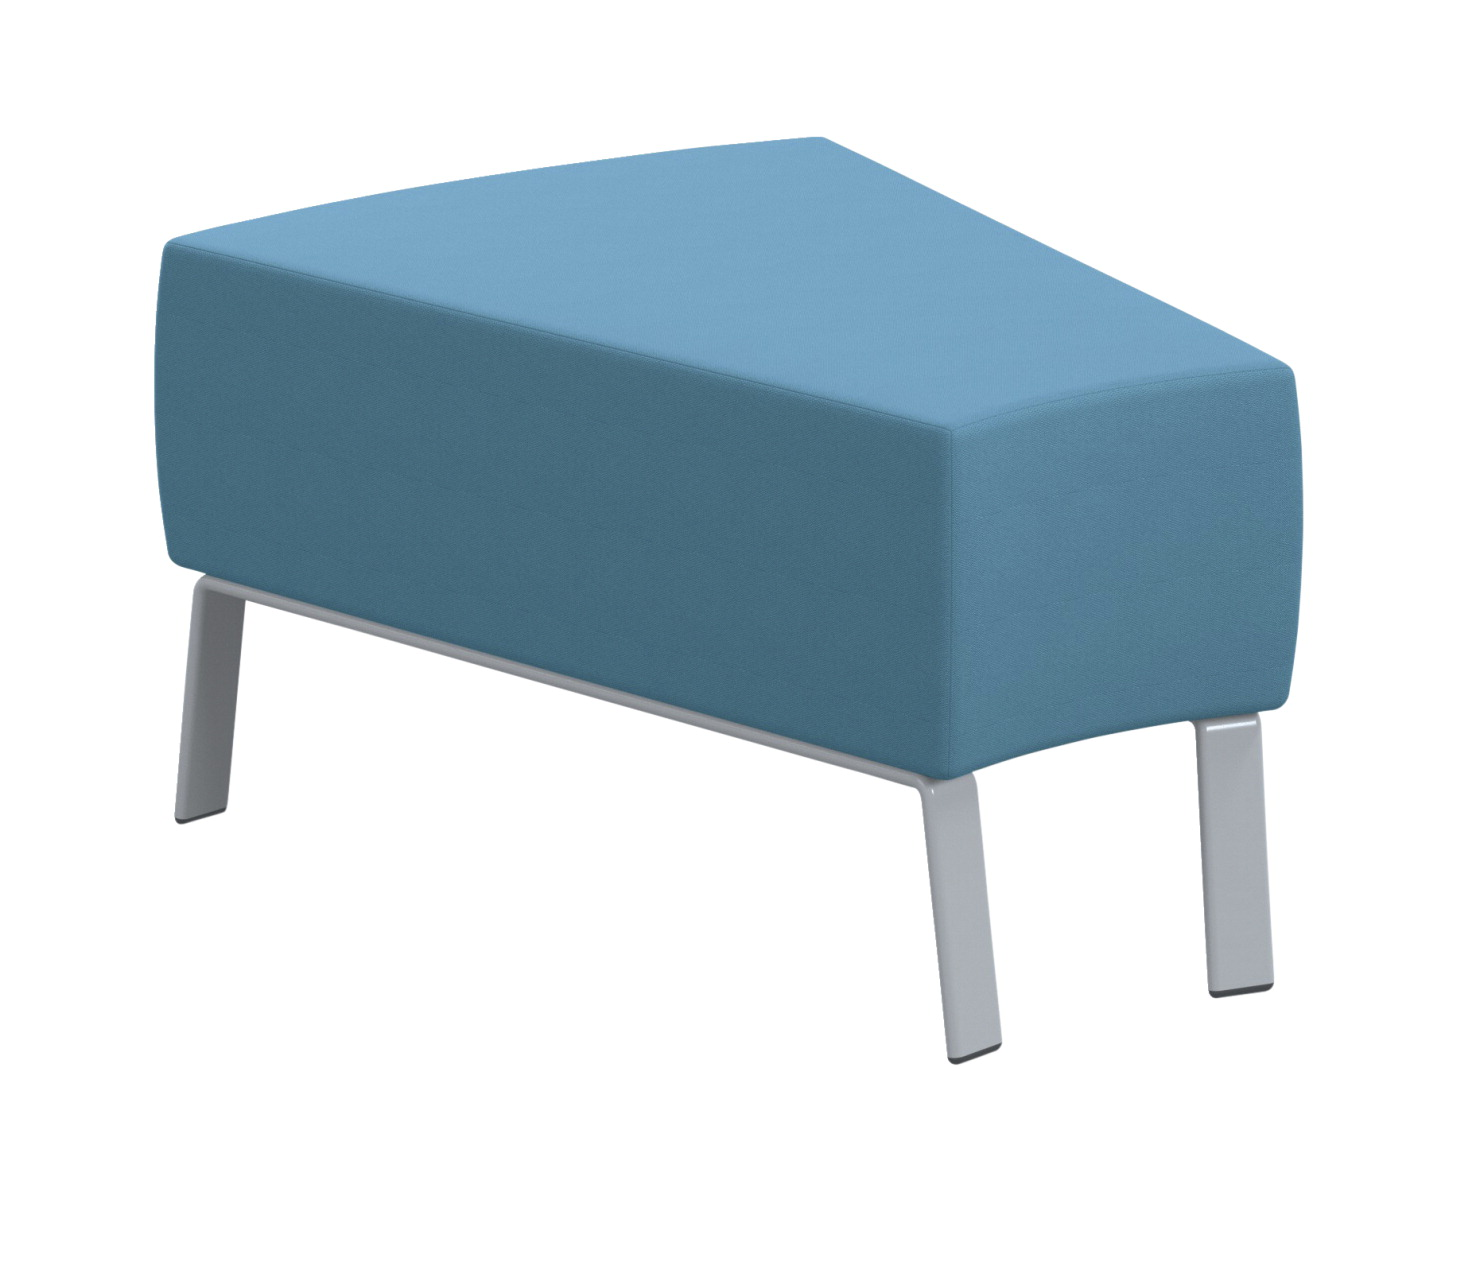 Classroom Select Soft Seating NeoLink 30 Degree Bench, 24 x 32 x 18 Inches, Various Options